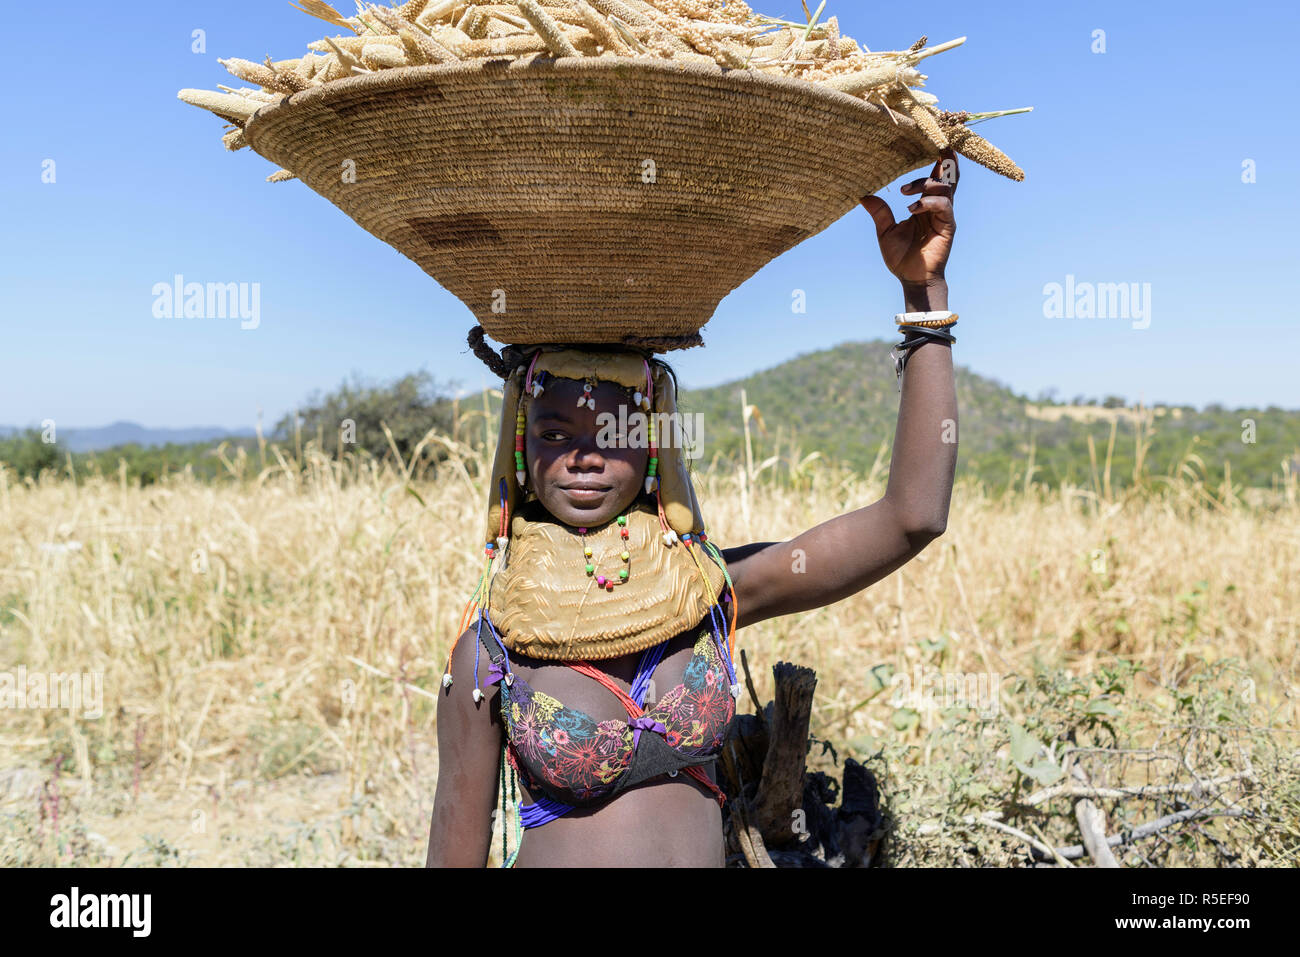 Portrait of a young pregnat Muila woman with traditional ornaments and hairstyle, wearing a fancy brass and carrying millet in a basket on her head. - Stock Image